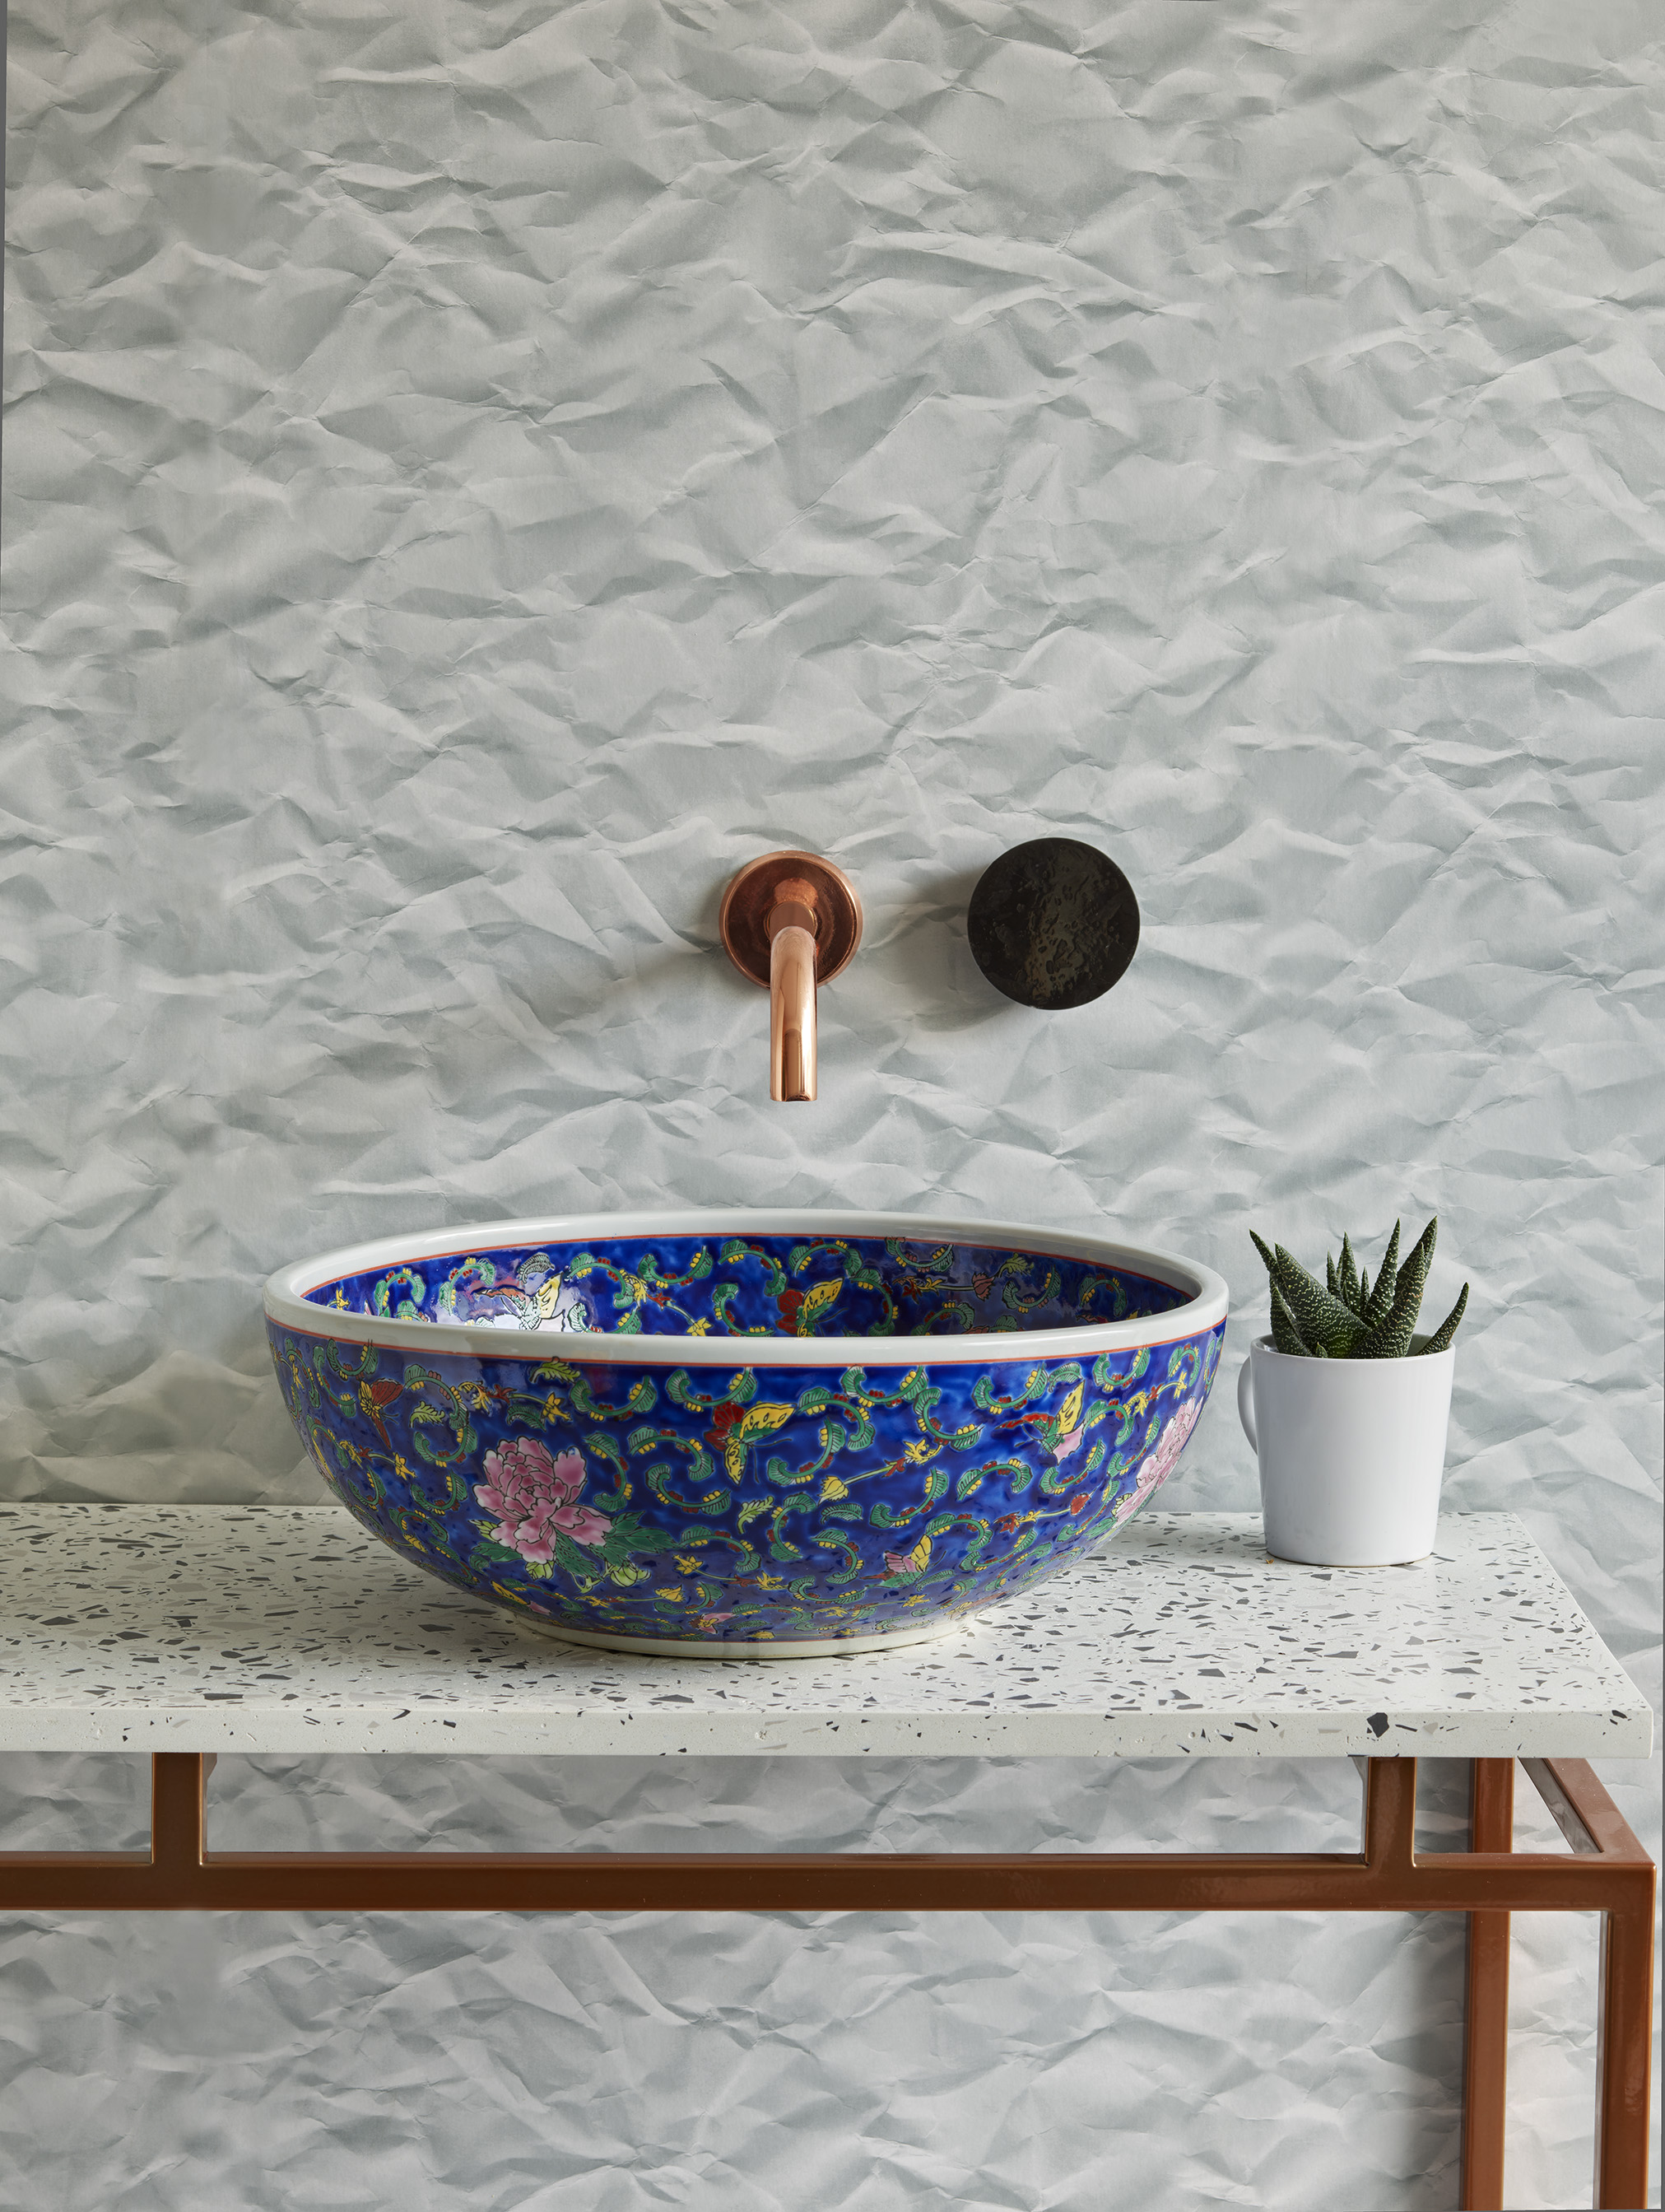 the glaze - Handmade by skilled craftsmen using the finest quality porcelain, with unrivalled attention to detail, each basin from the exceptional collection is finished and glazed by hand, meaning each design has its own unique character. Produced using one of two techniques, the 'under the glaze' approach, where the pattern is applied to the clay, then glazed and fired, or the 'over the glaze' technique, where clay washbasins are glazed and fired, the pattern is then applied and followed by a further two firings to ensure paint durability and an exquisite finish, the magnificent range is sure to bring a bathroom to life.